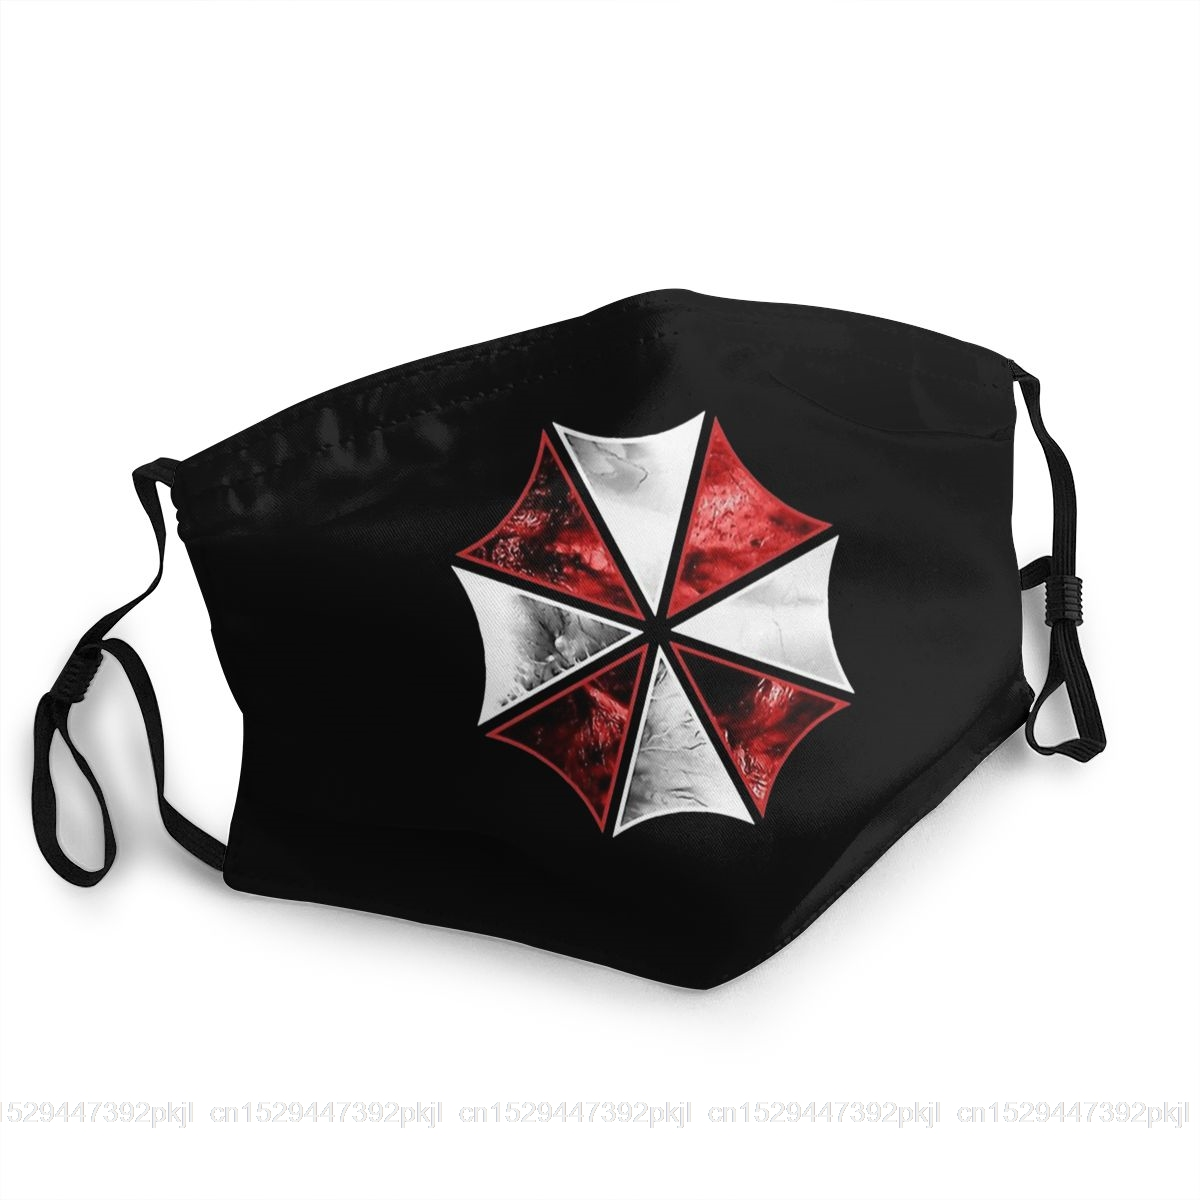 Umbrella Corporation Unisex Mouth Mask Residented Evil Facial Protective